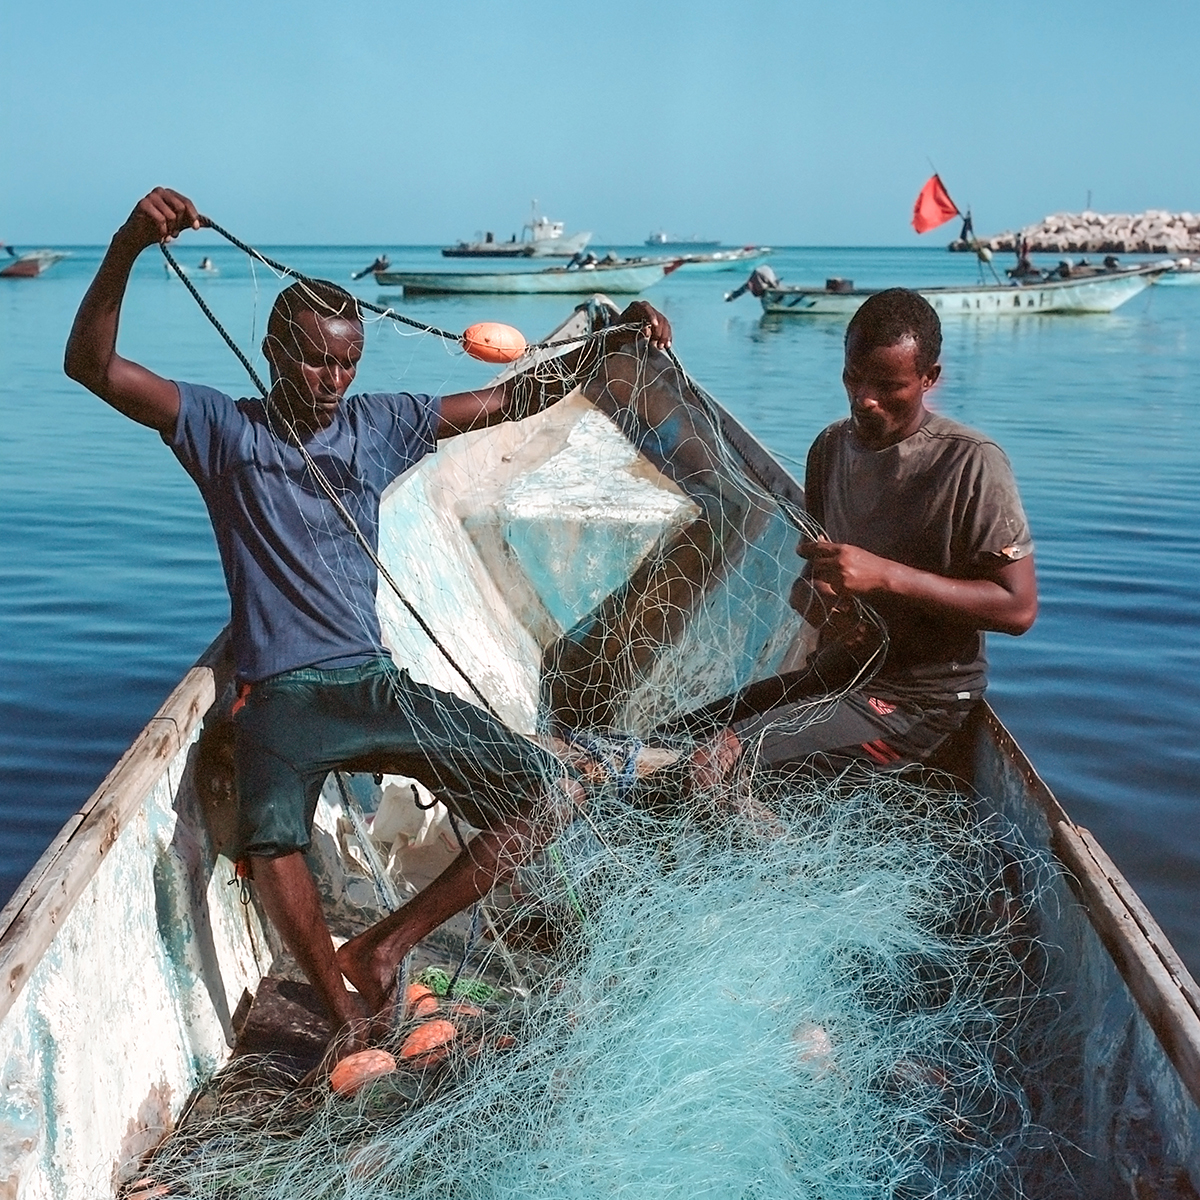 """Nichole Sobecki, Ahmed and Hamza untangle their nets, May 2016. Archival pigment print, 20 × 20""""."""